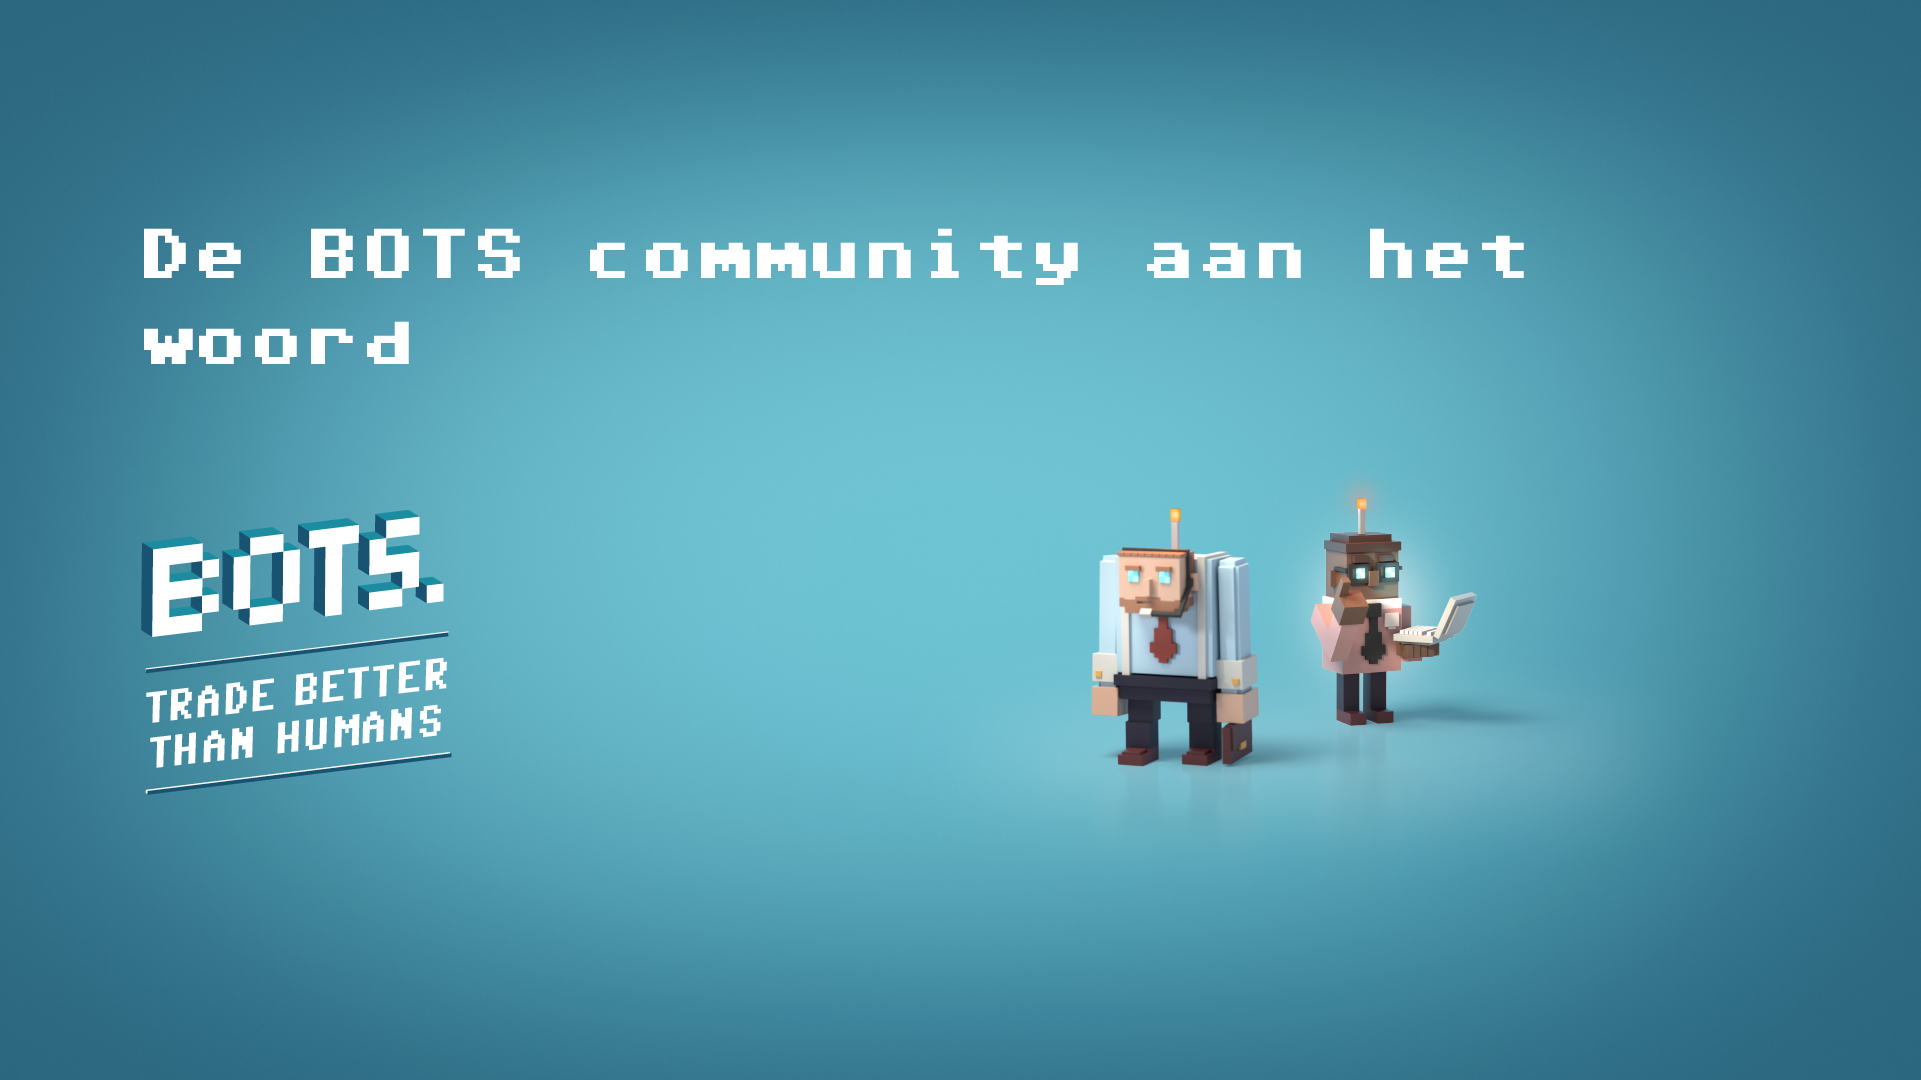 The BOTS community speaking: Jan Staps